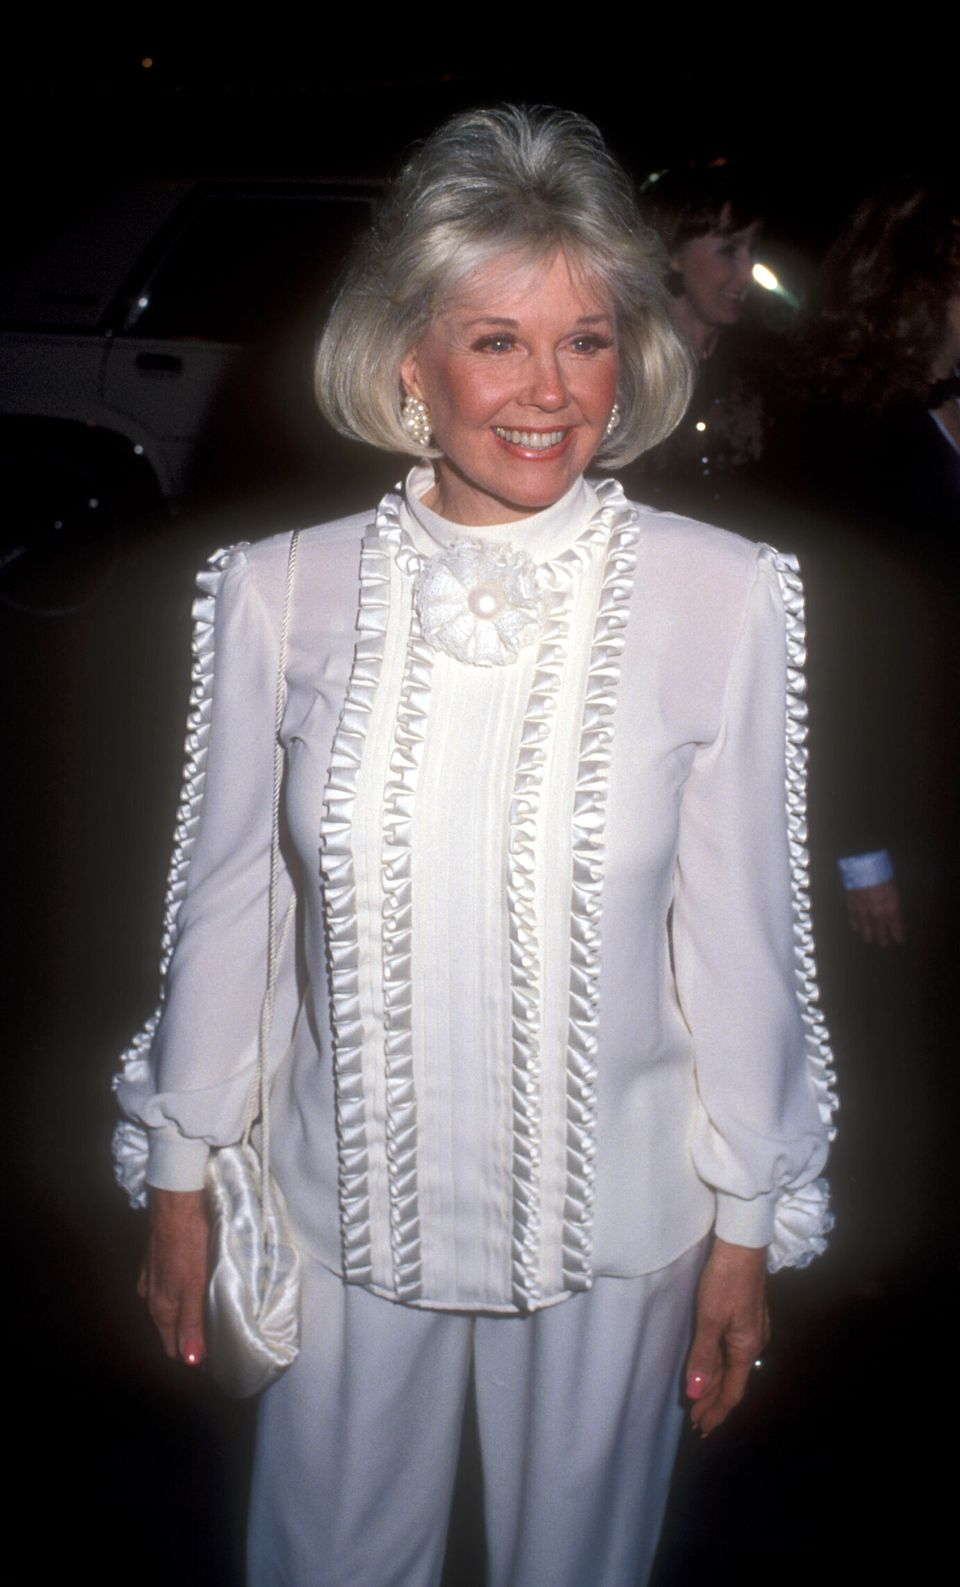 Westlake Legal Group 5cd97eed2100005800d06650 A Look Back At Doris Day's Life And Career In Photos